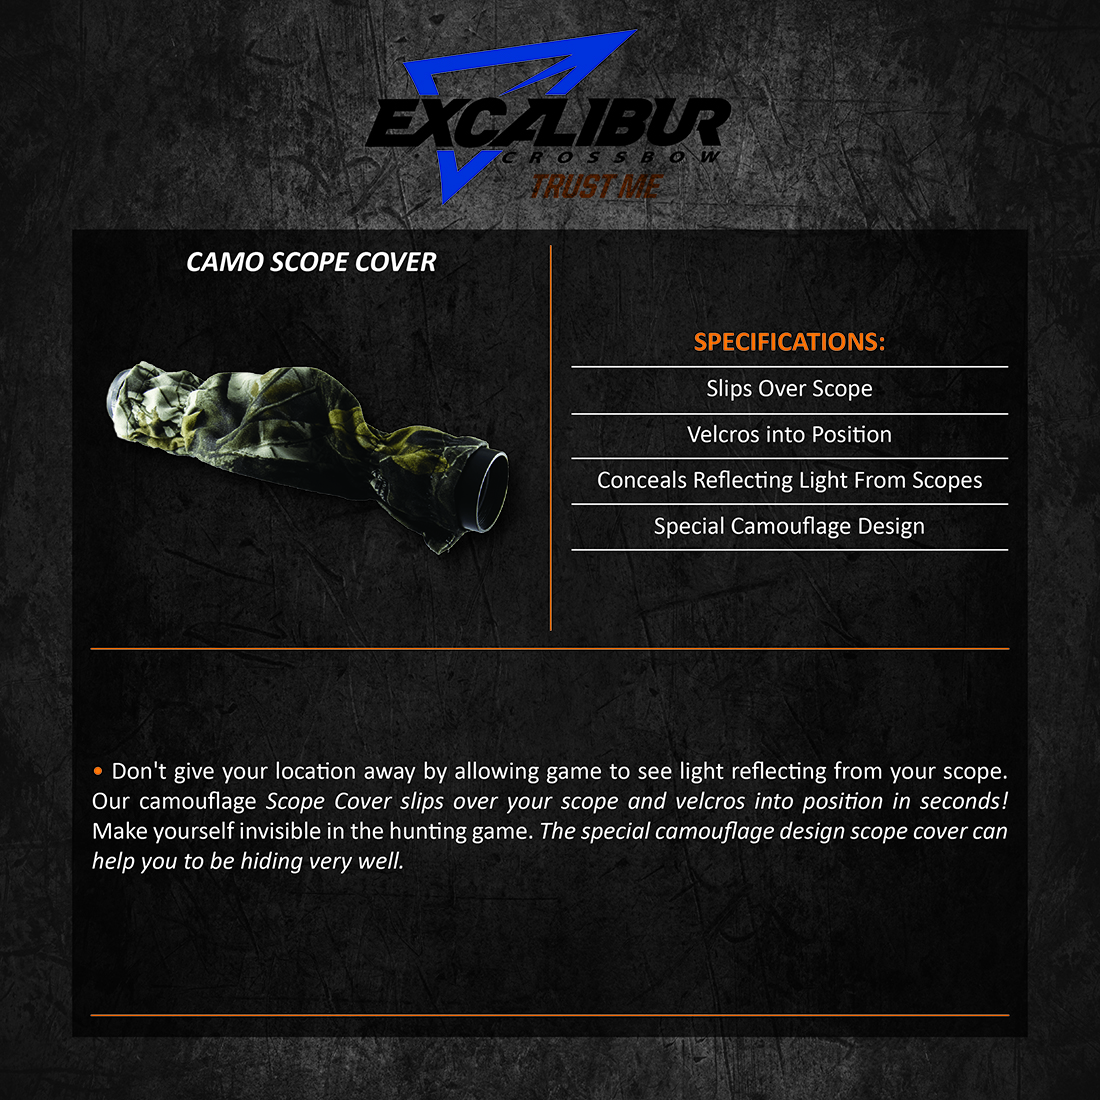 Excalibur_Scope_Cover_Camo_Product_Description